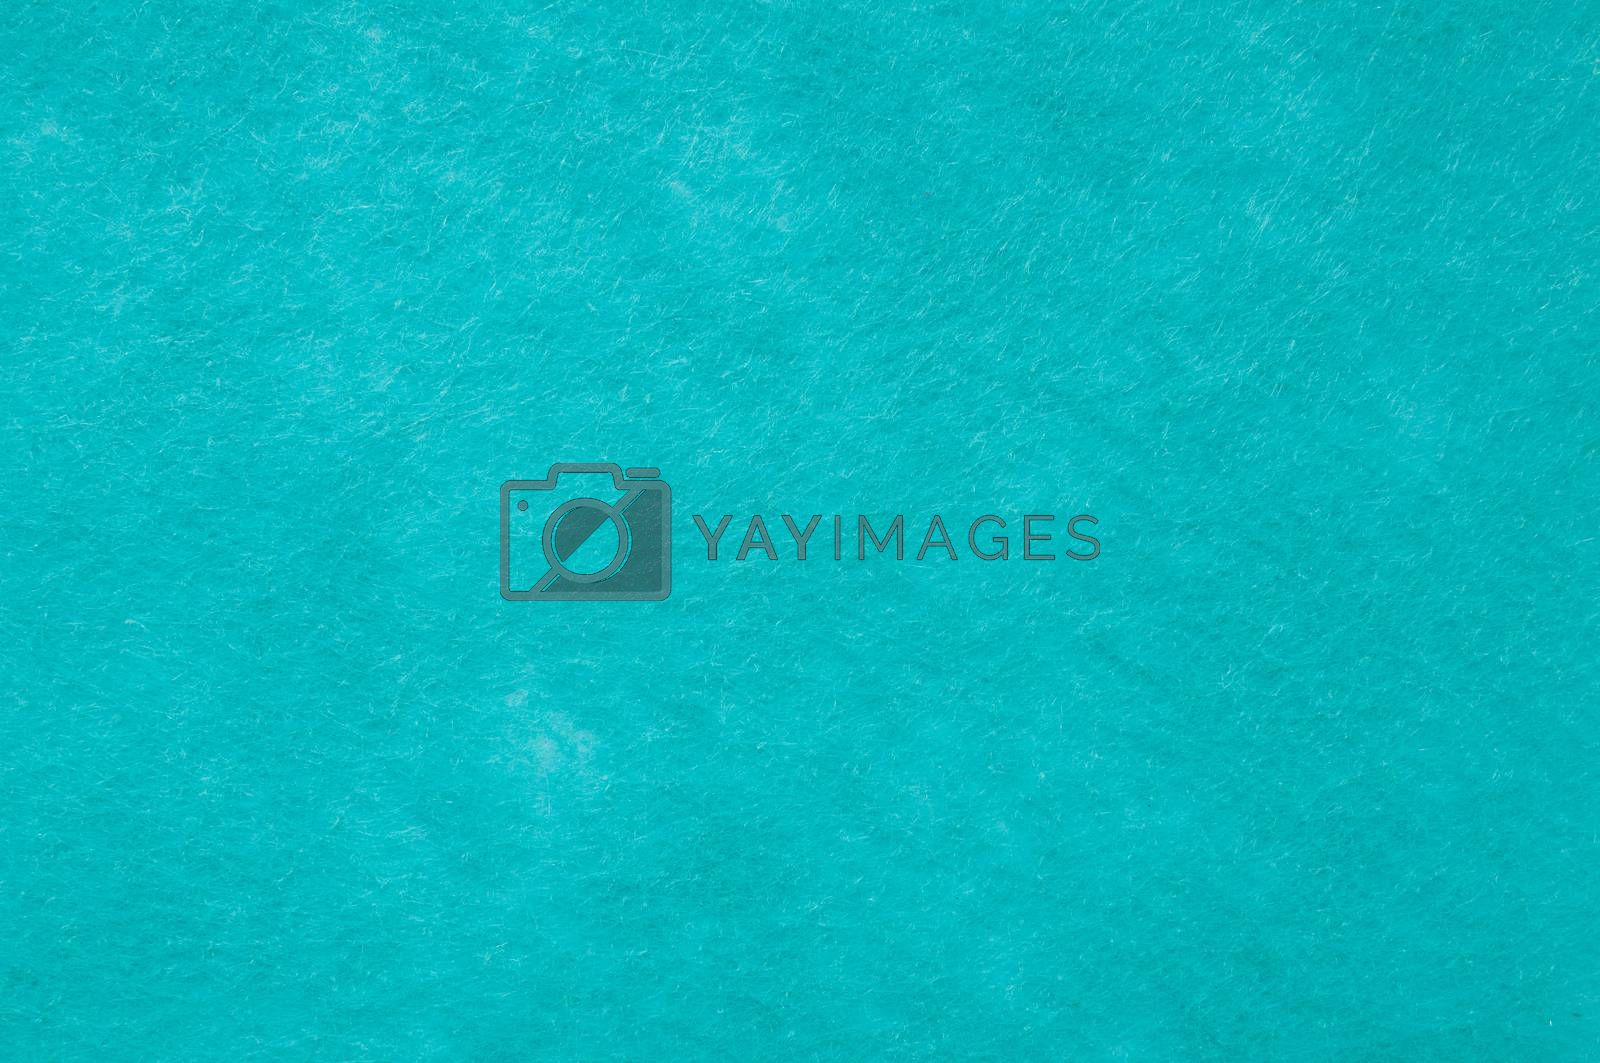 Texture background of Dark blue Green velvet or turquoise flannel Fabric as backdrop or wallpaper pattern for decoration